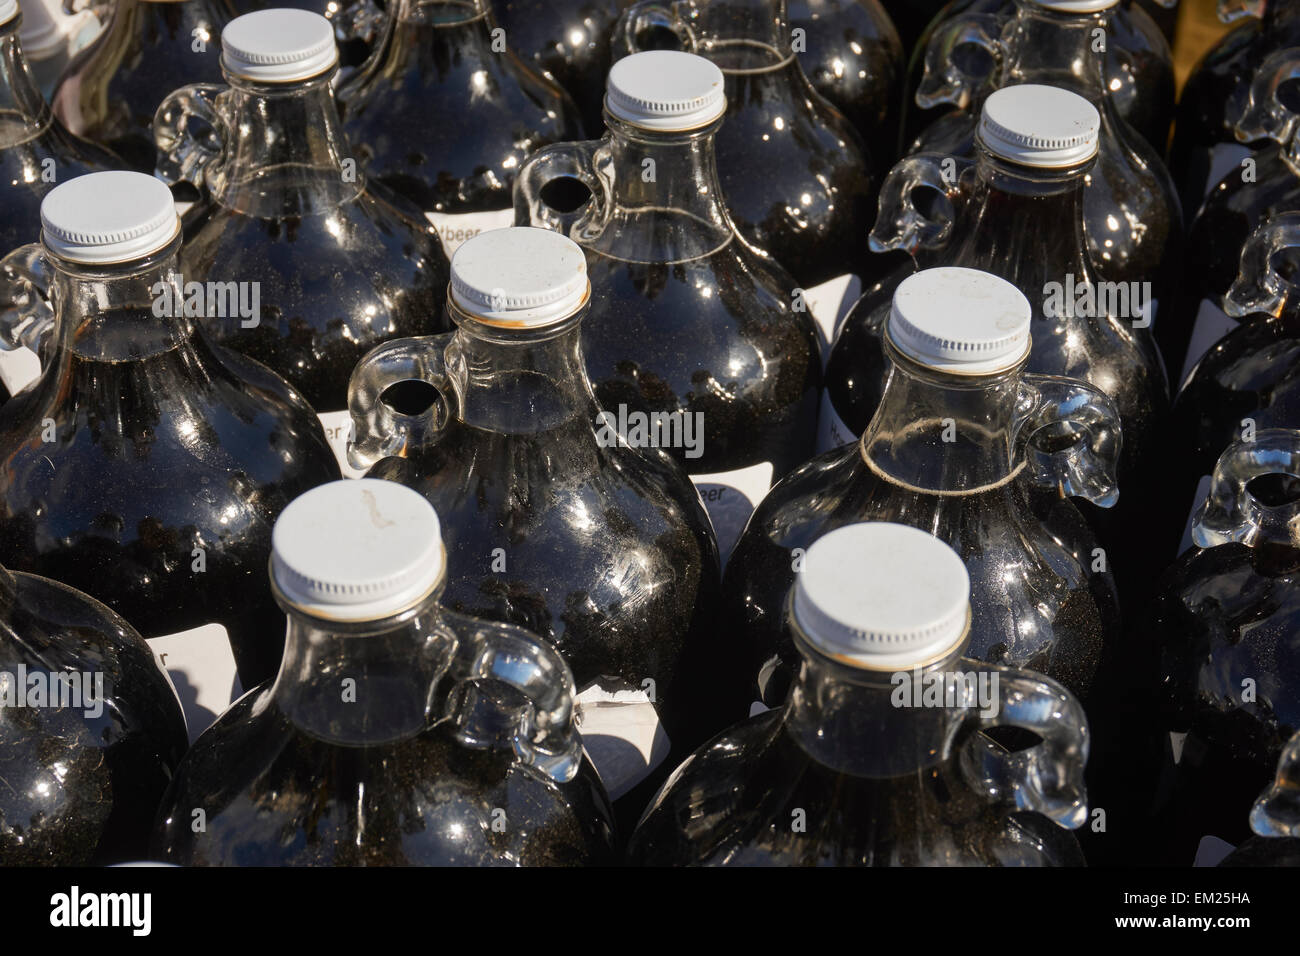 Bottles of Amish-made artisan root beer at an outdoor market (sometimes called a 'mud sale'), Wakefield, - Stock Image